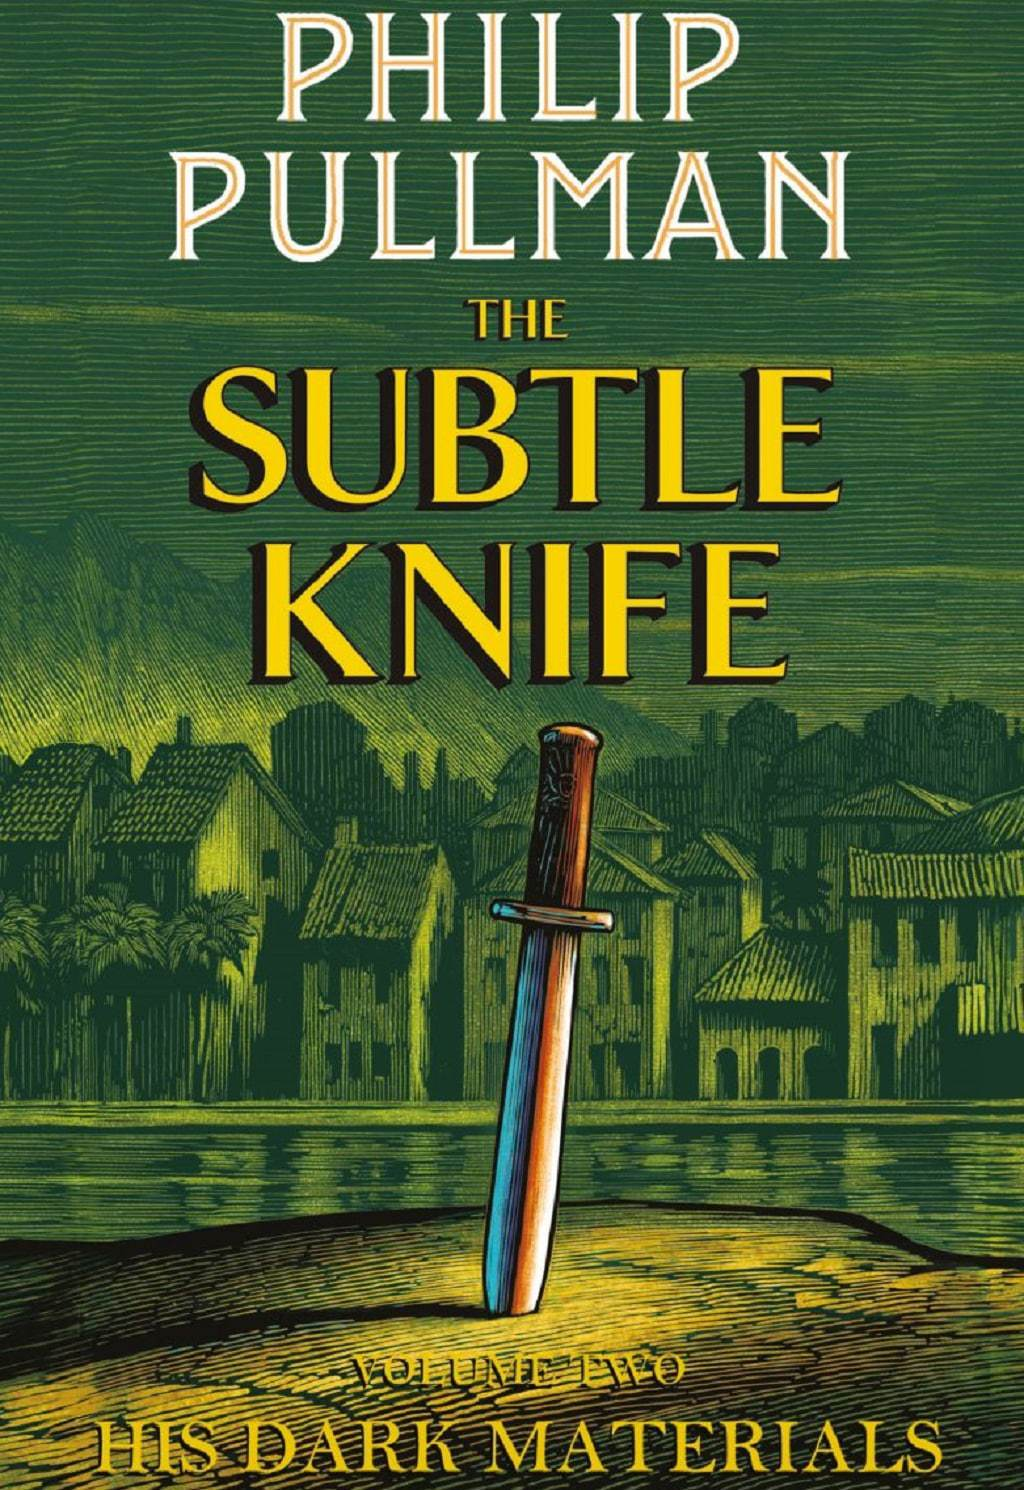 The Subtle Knife Audiobook Free Download